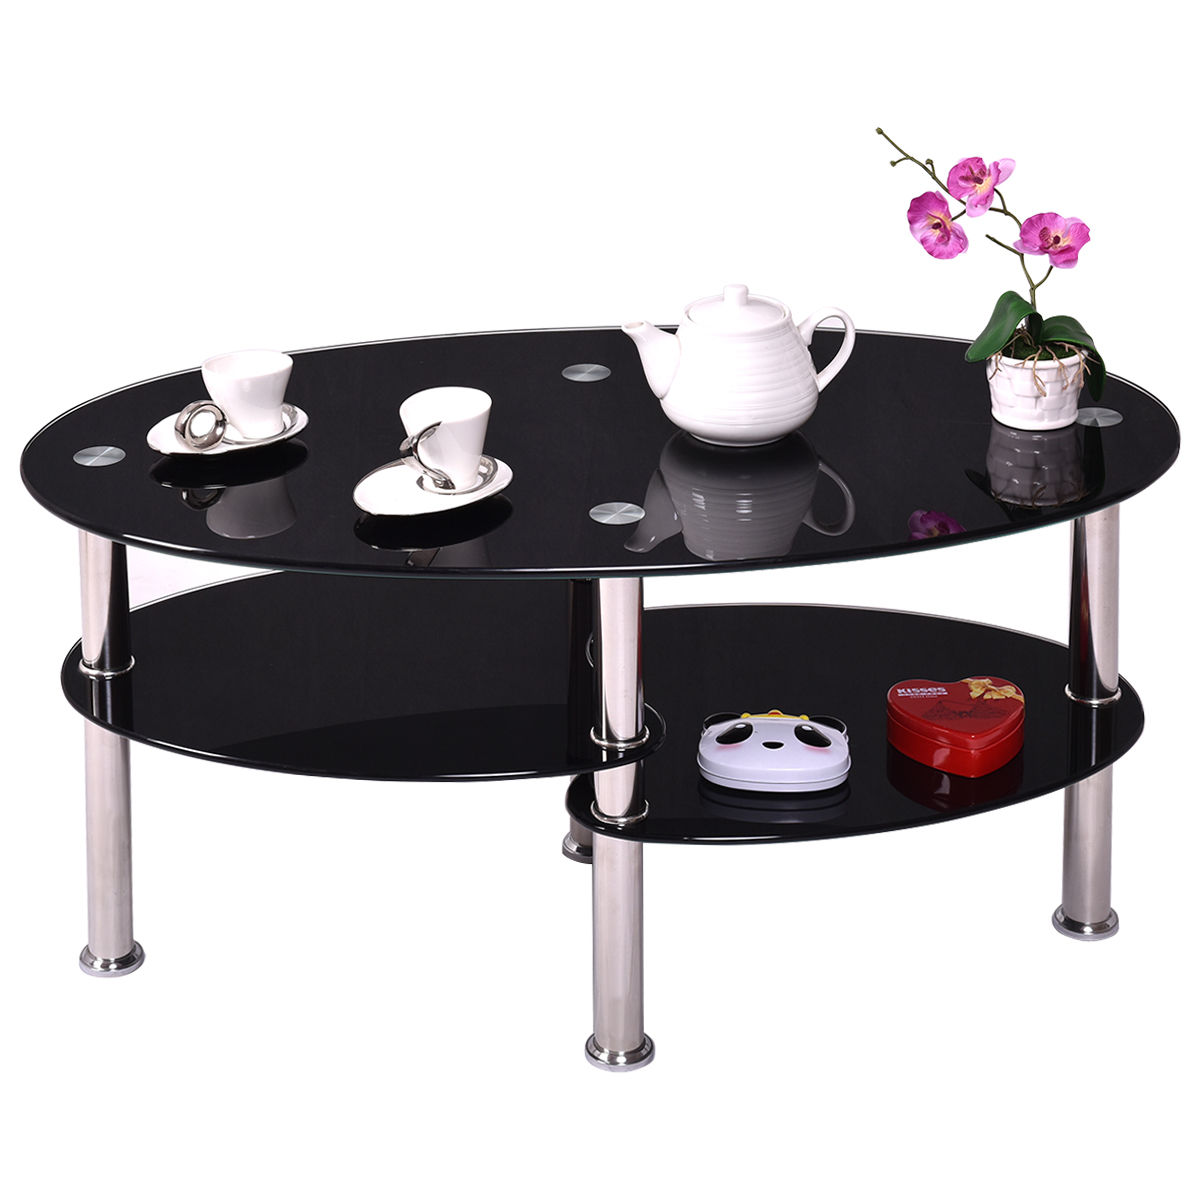 Coffee side tea table glass oval 3 shelf design black - Glass side tables for living room uk ...